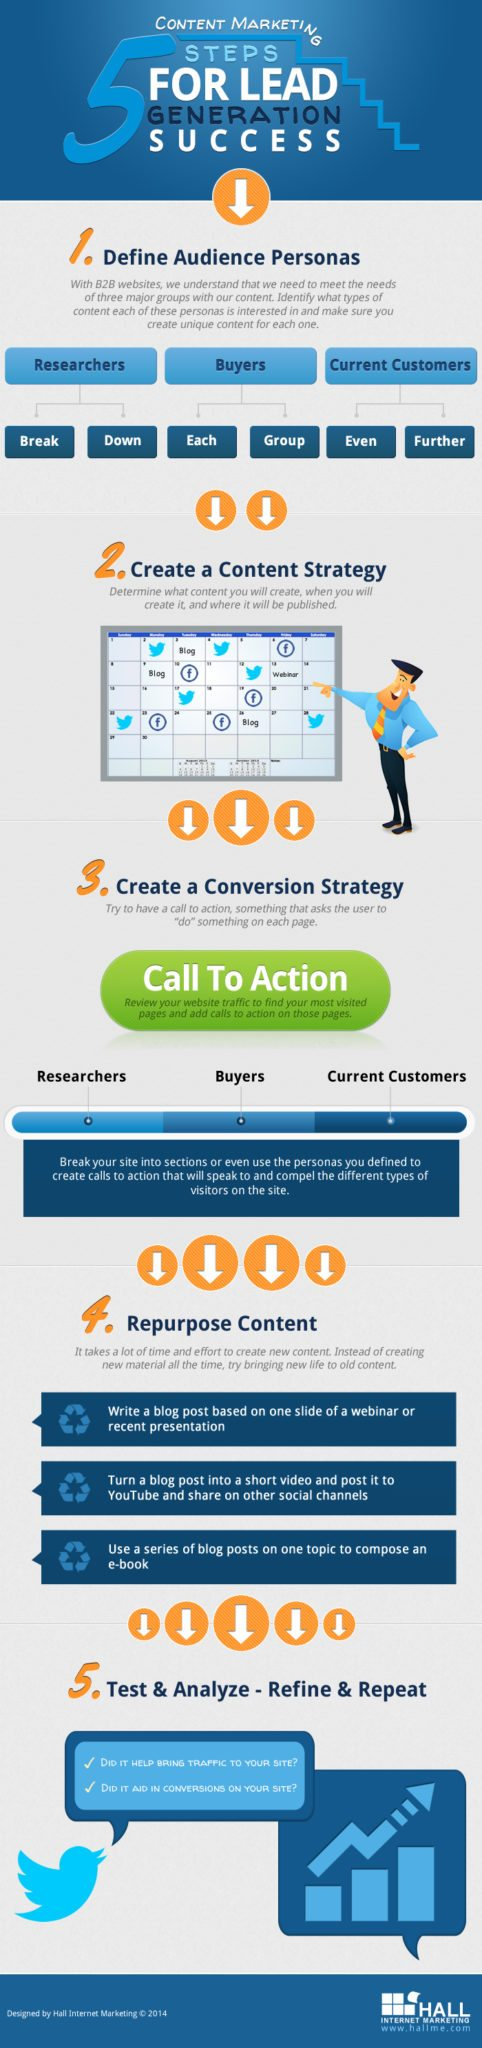 Content Marketing: 5 Steps For Lead Generation Success